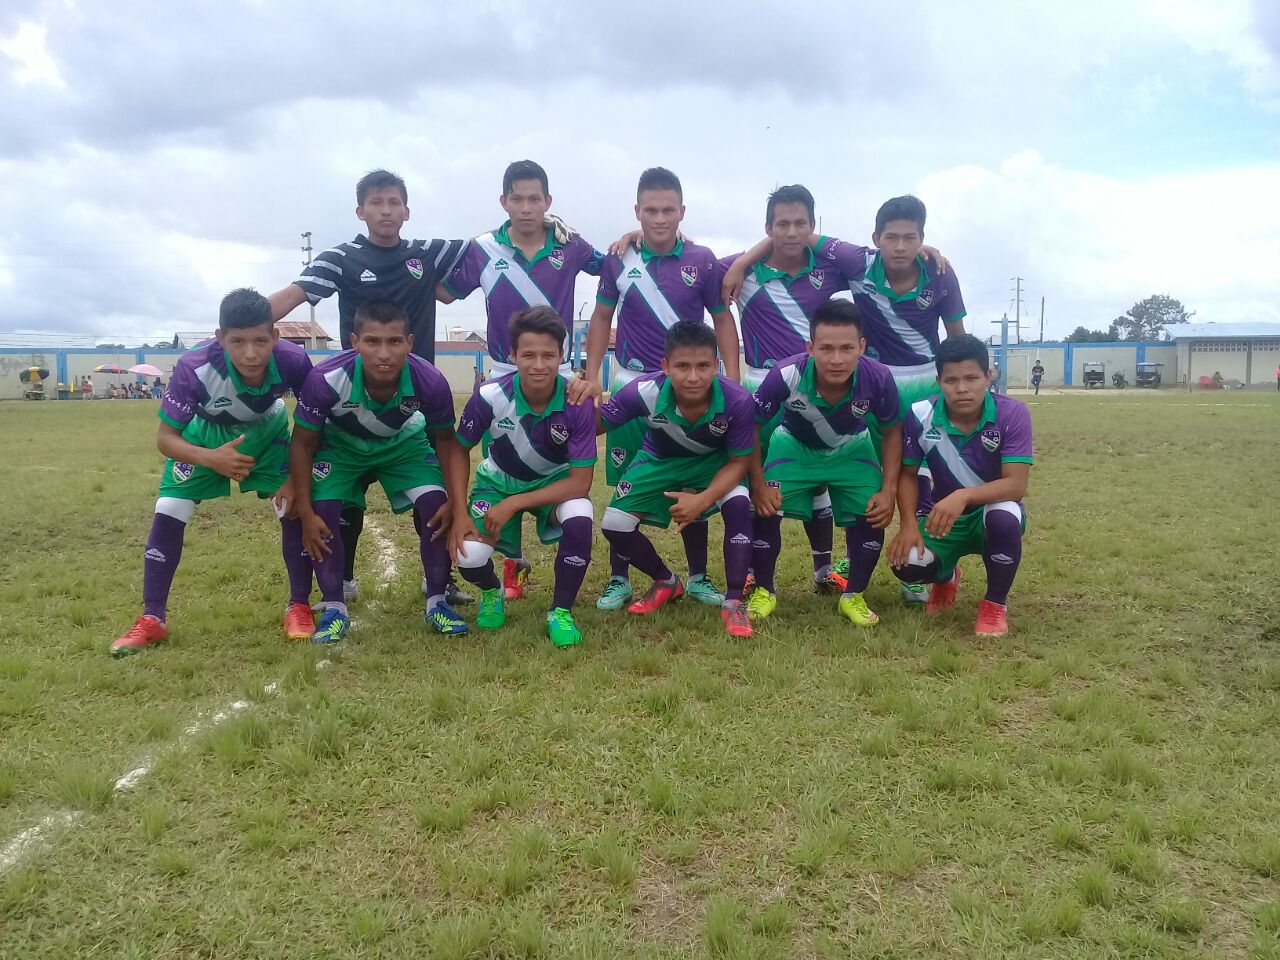 ADC El Milagro, young soccer players from Nauta, Peru